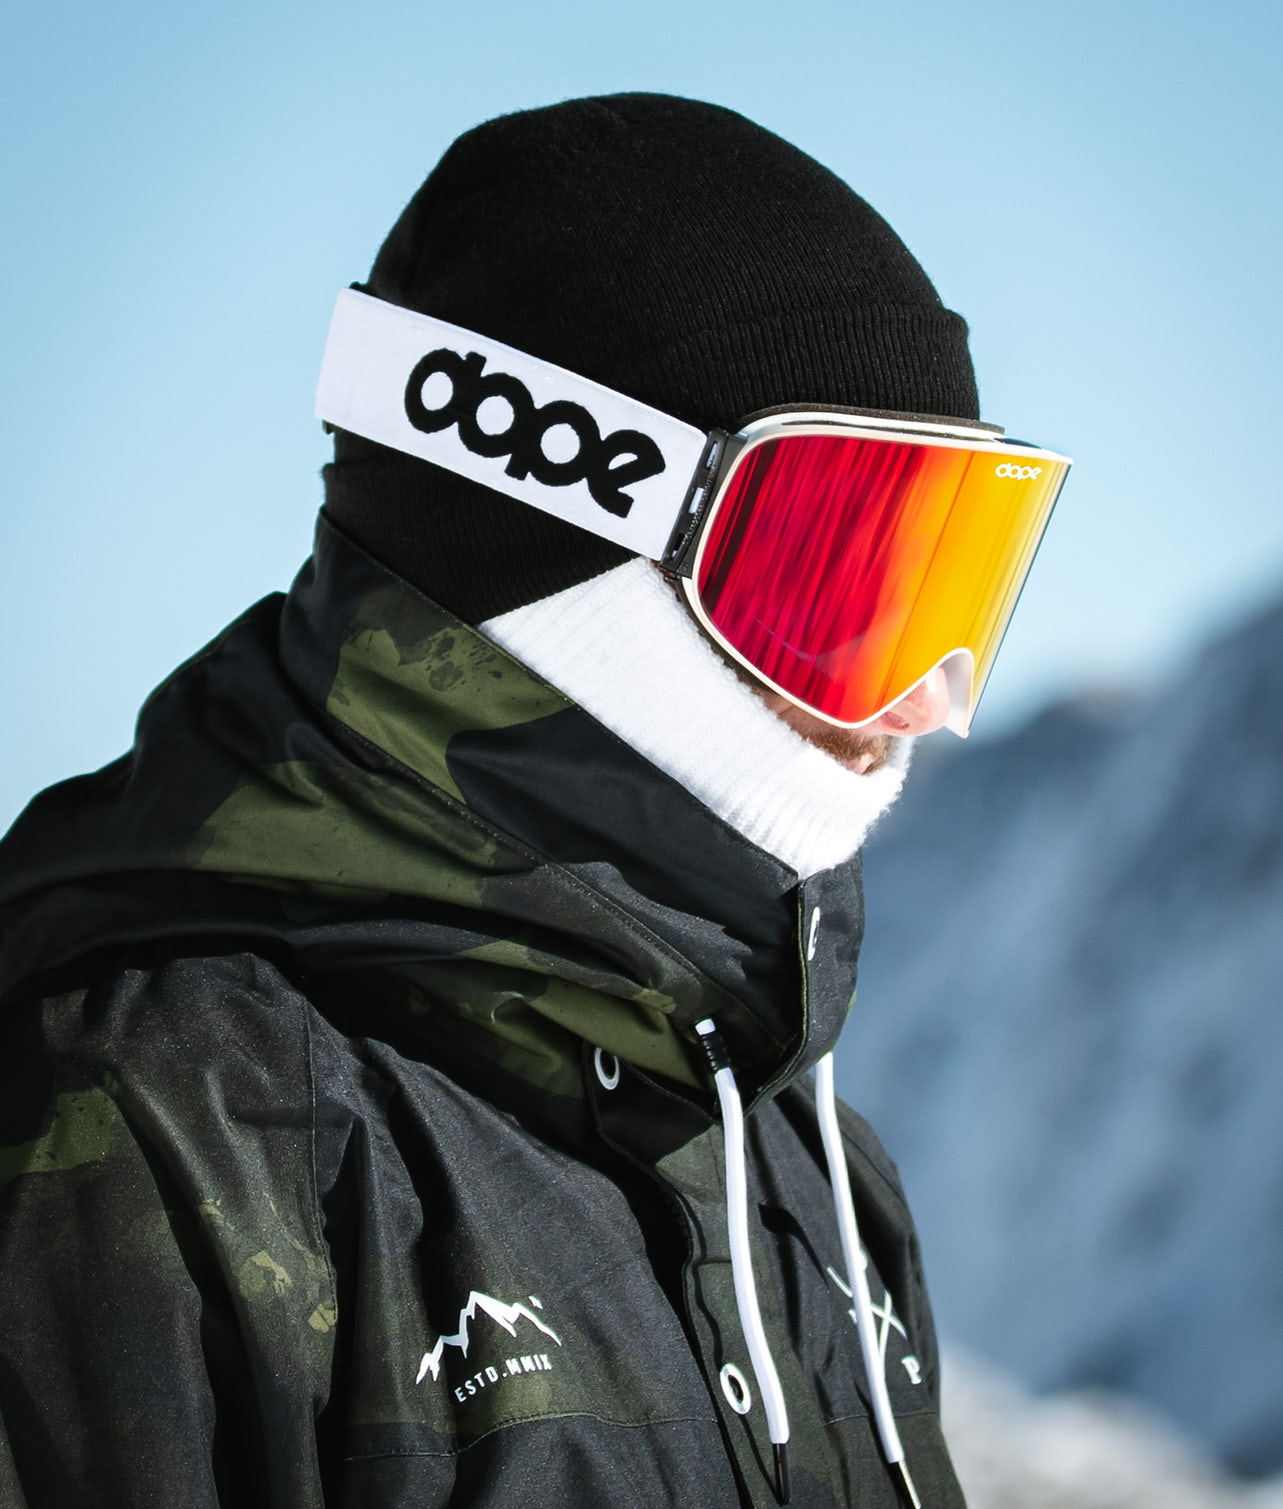 Buy Flush OG Ski Goggle from Dope at Ridestore.com - Always free shipping, free returns and 30 days money back guarantee